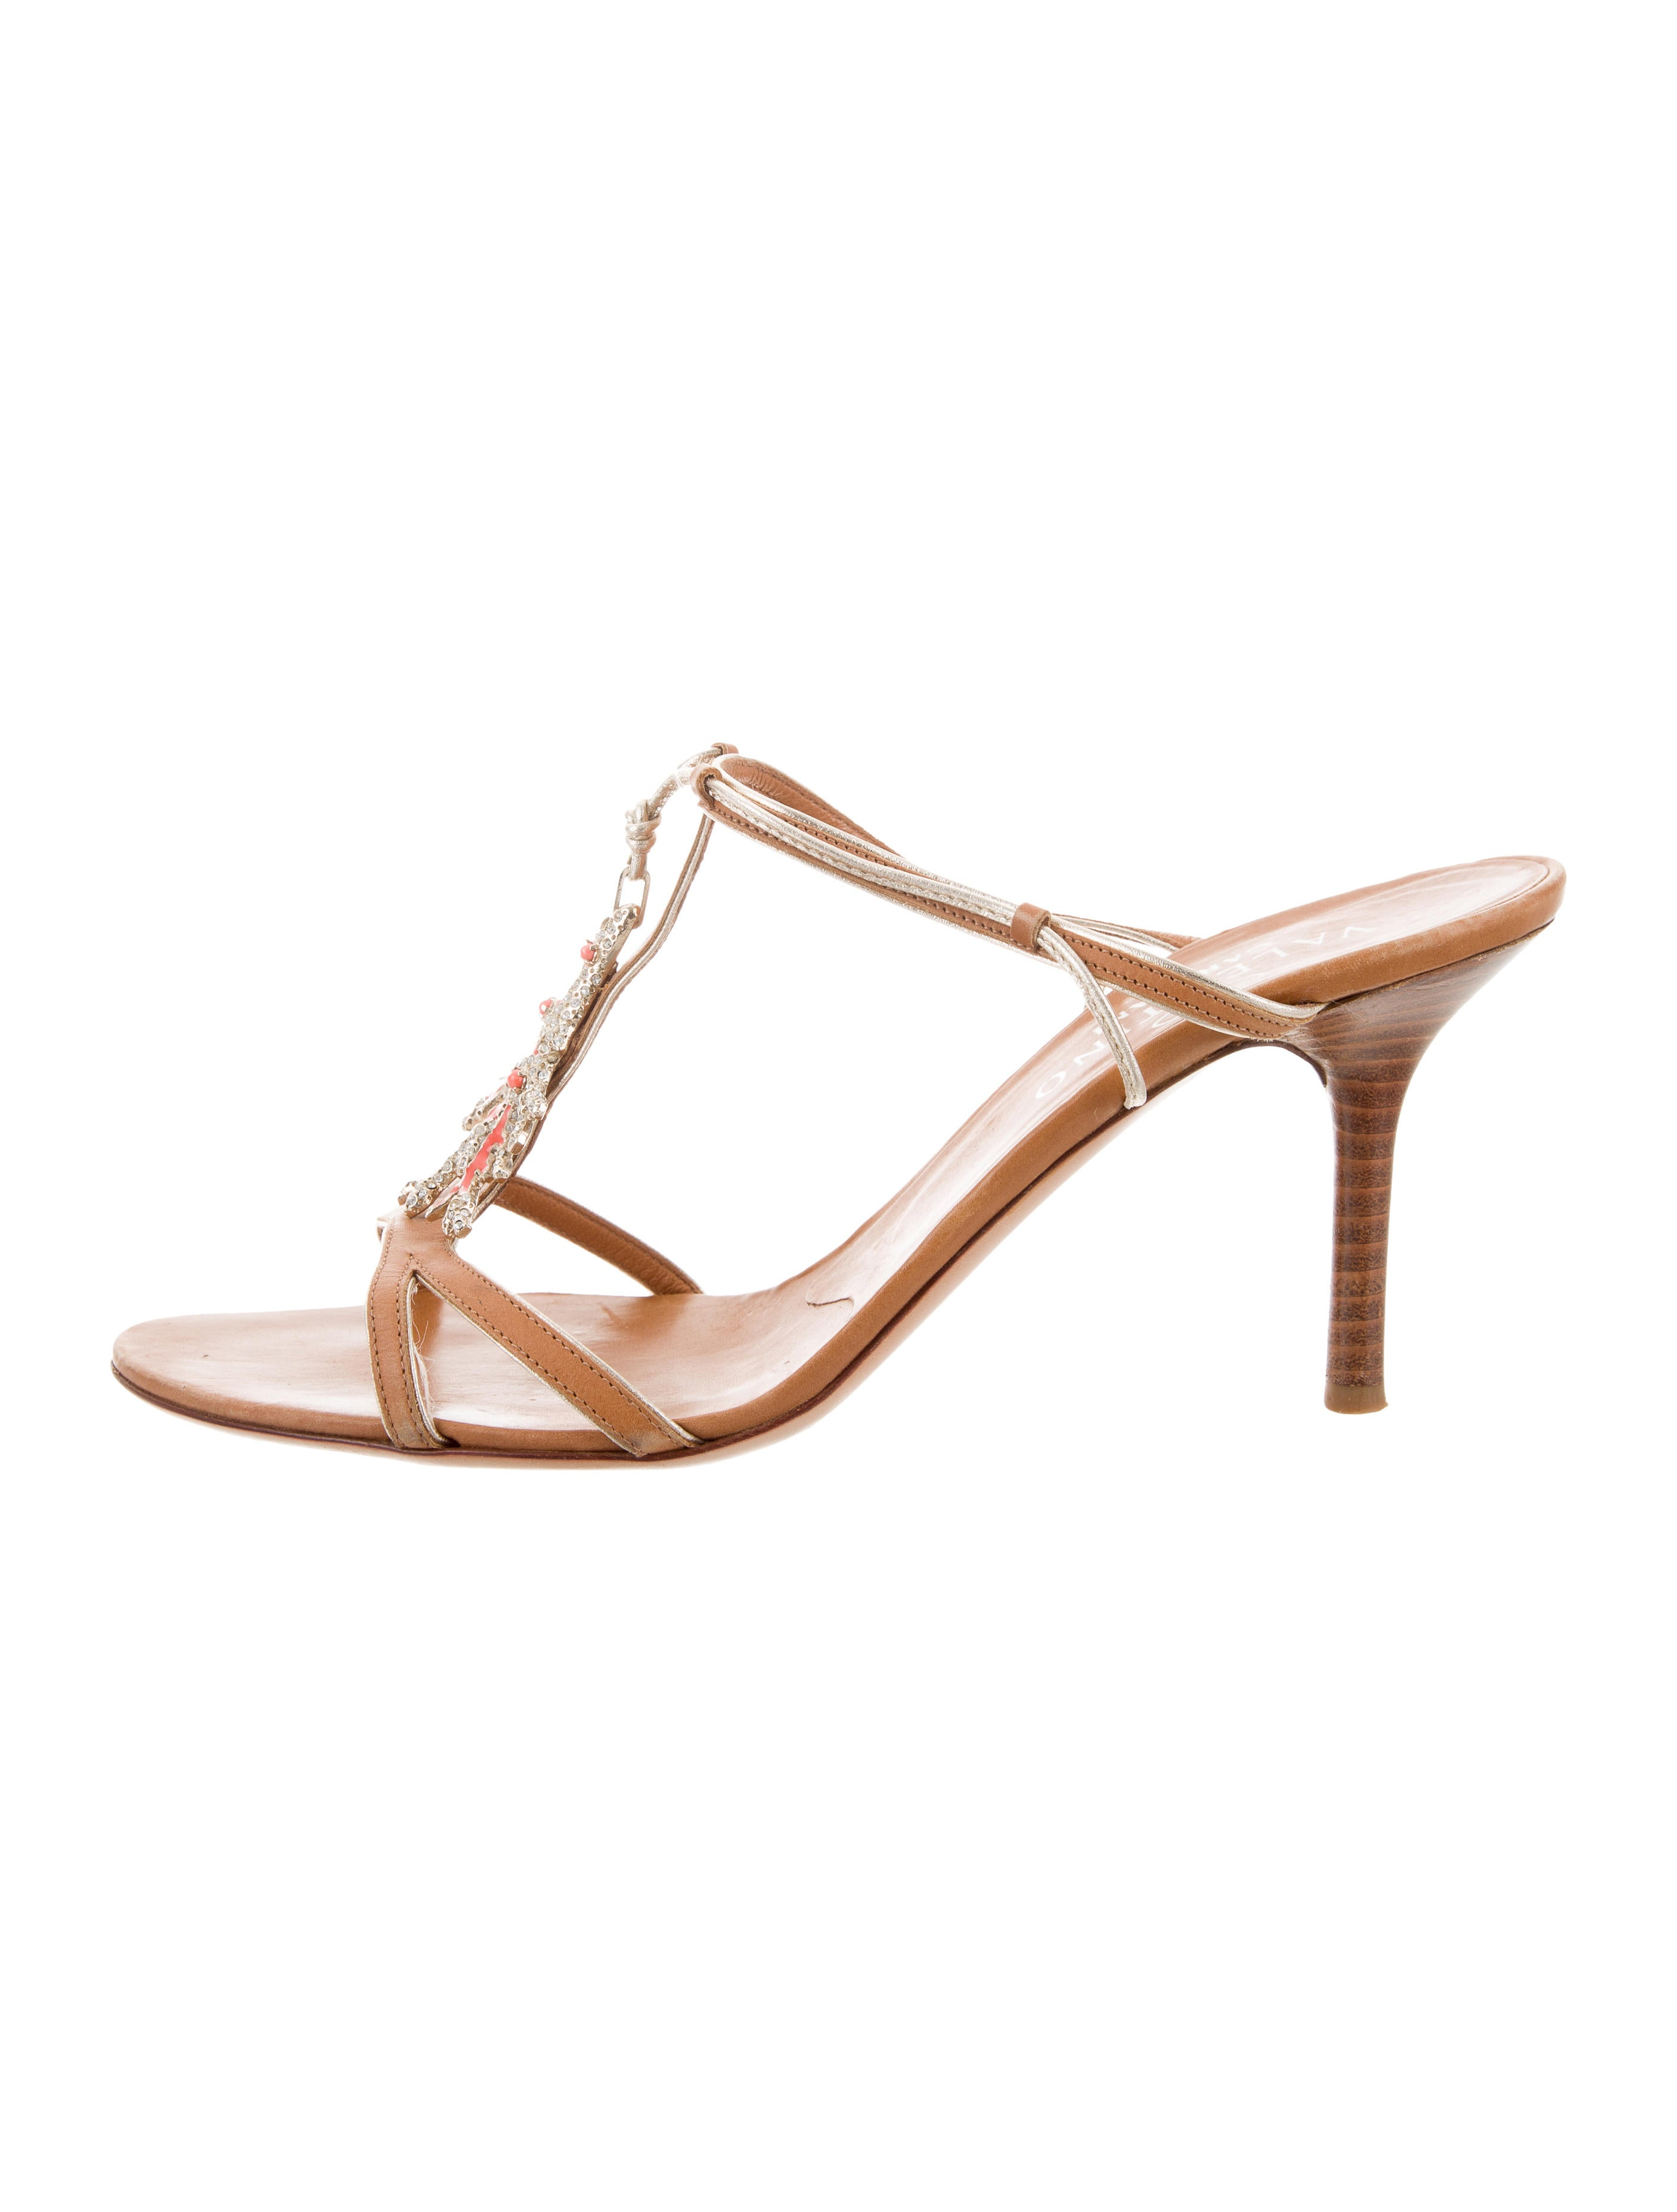 Valentino Embellished Slide Sandals outlet explore outlet free shipping authentic KAufOhiY1R